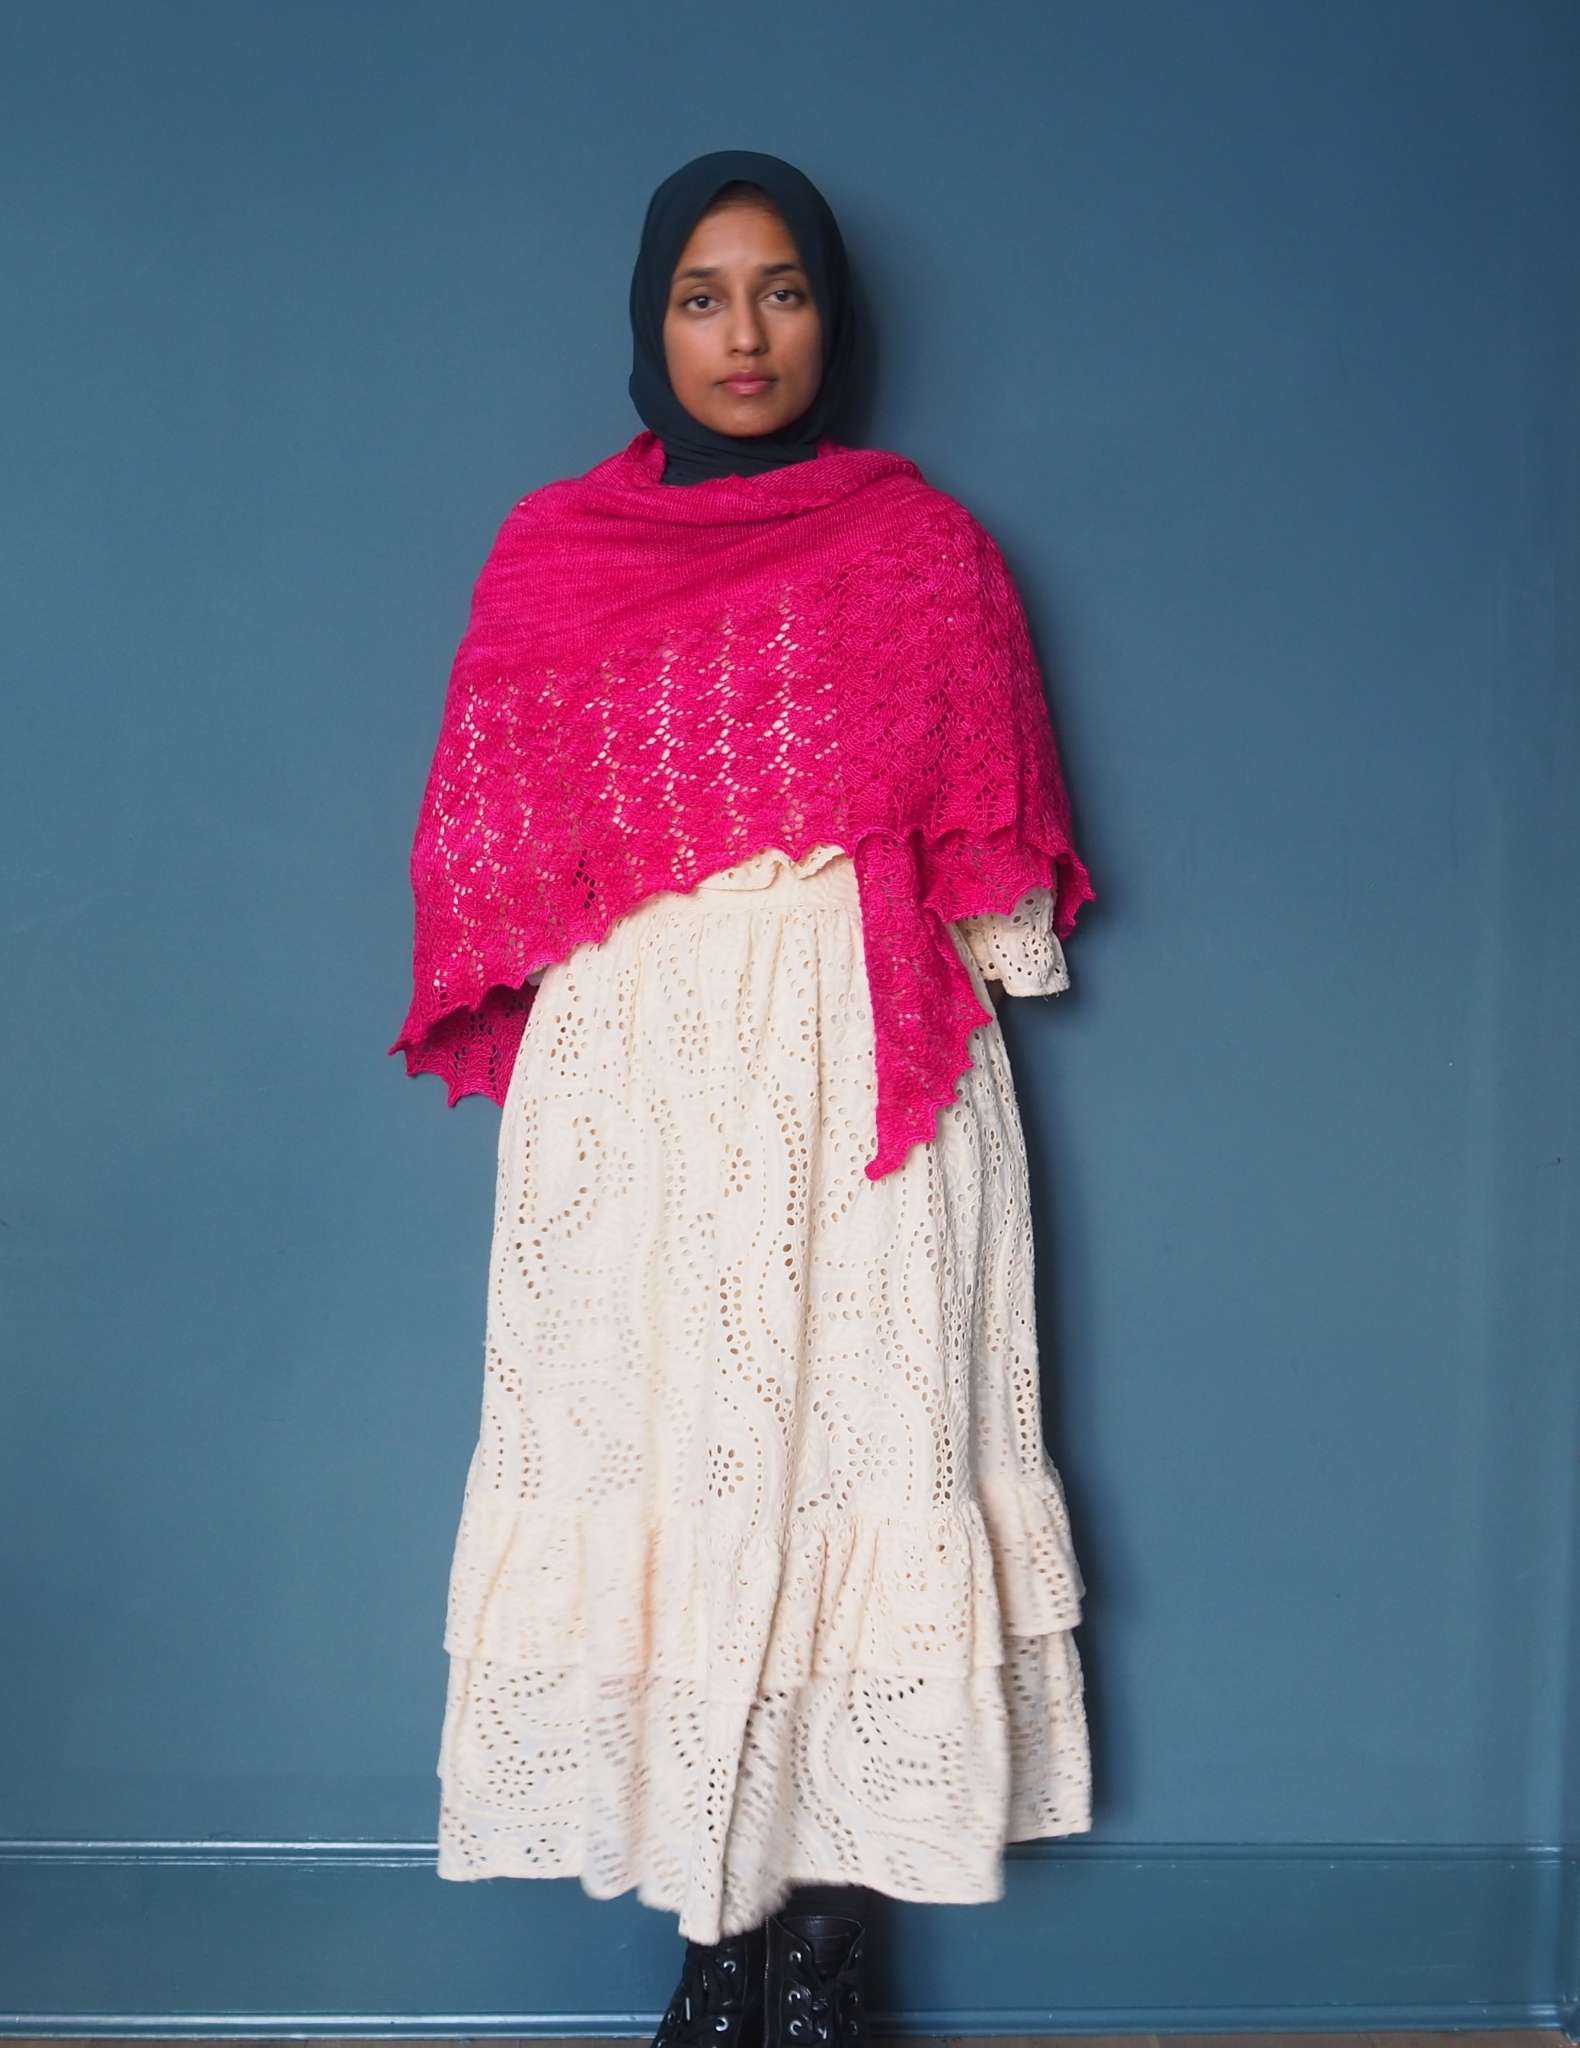 A brown woman in a hijab stands in front of a dark blue background. She is wearing a floaty cream dress with a large bright pink shawl wrapped around her shoulders and chest.